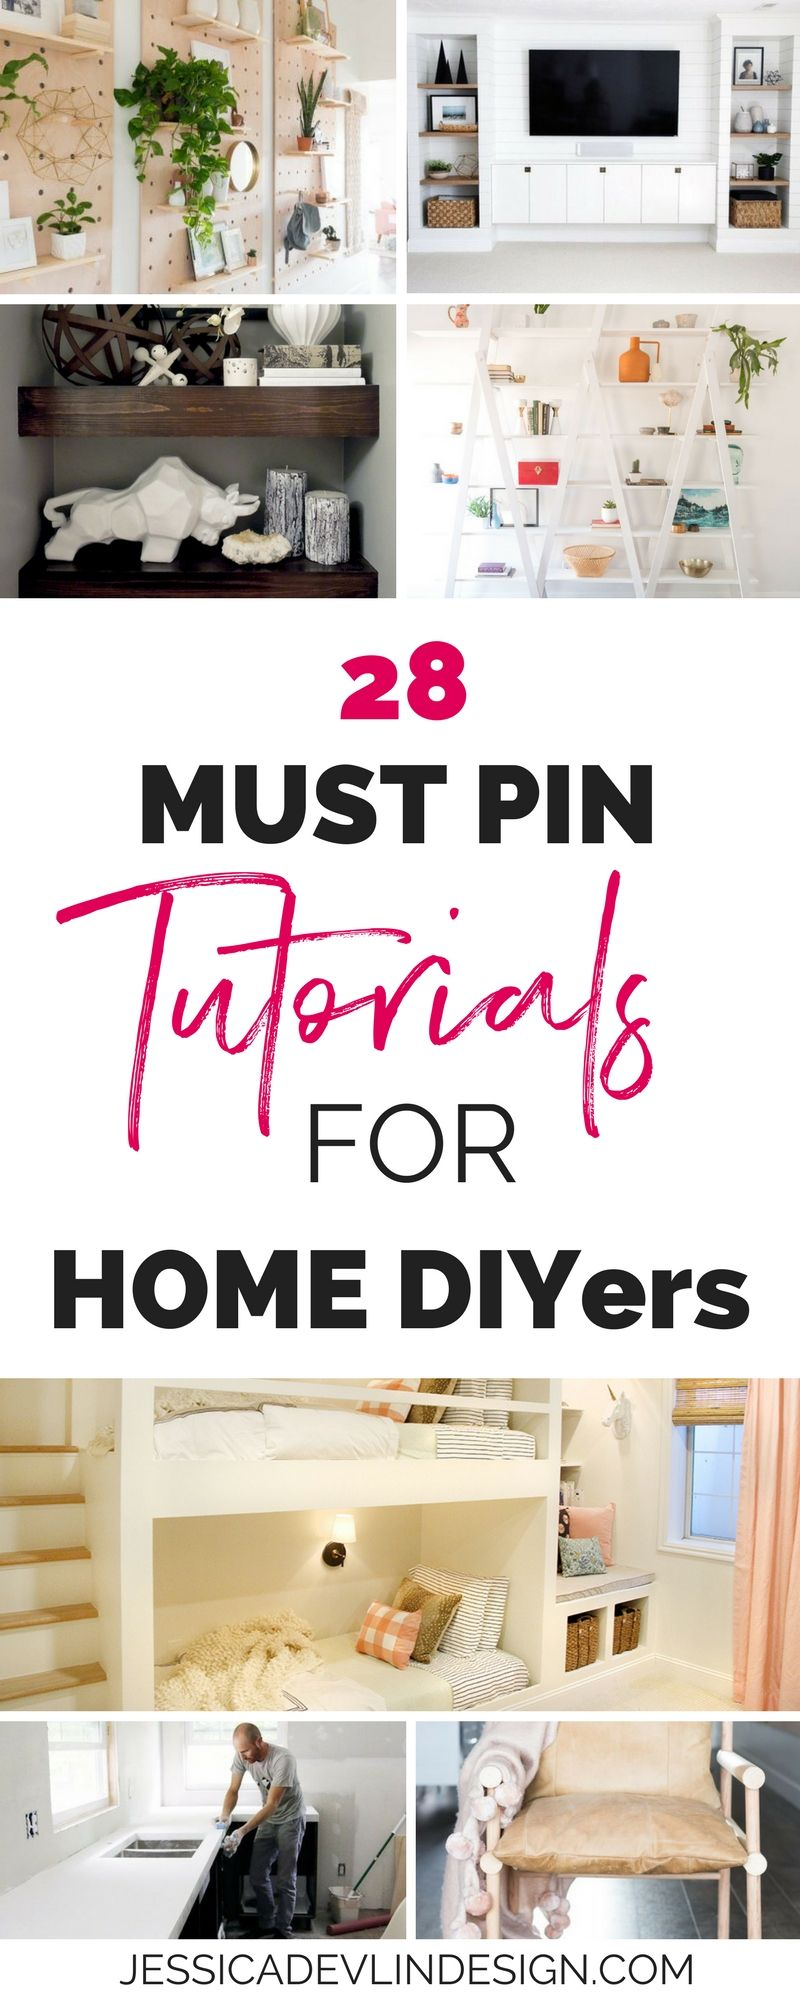 7 Of The Best Diy Home Decor Tutorials Jessica Devlin Design Home Diy Home Decor Home Projects